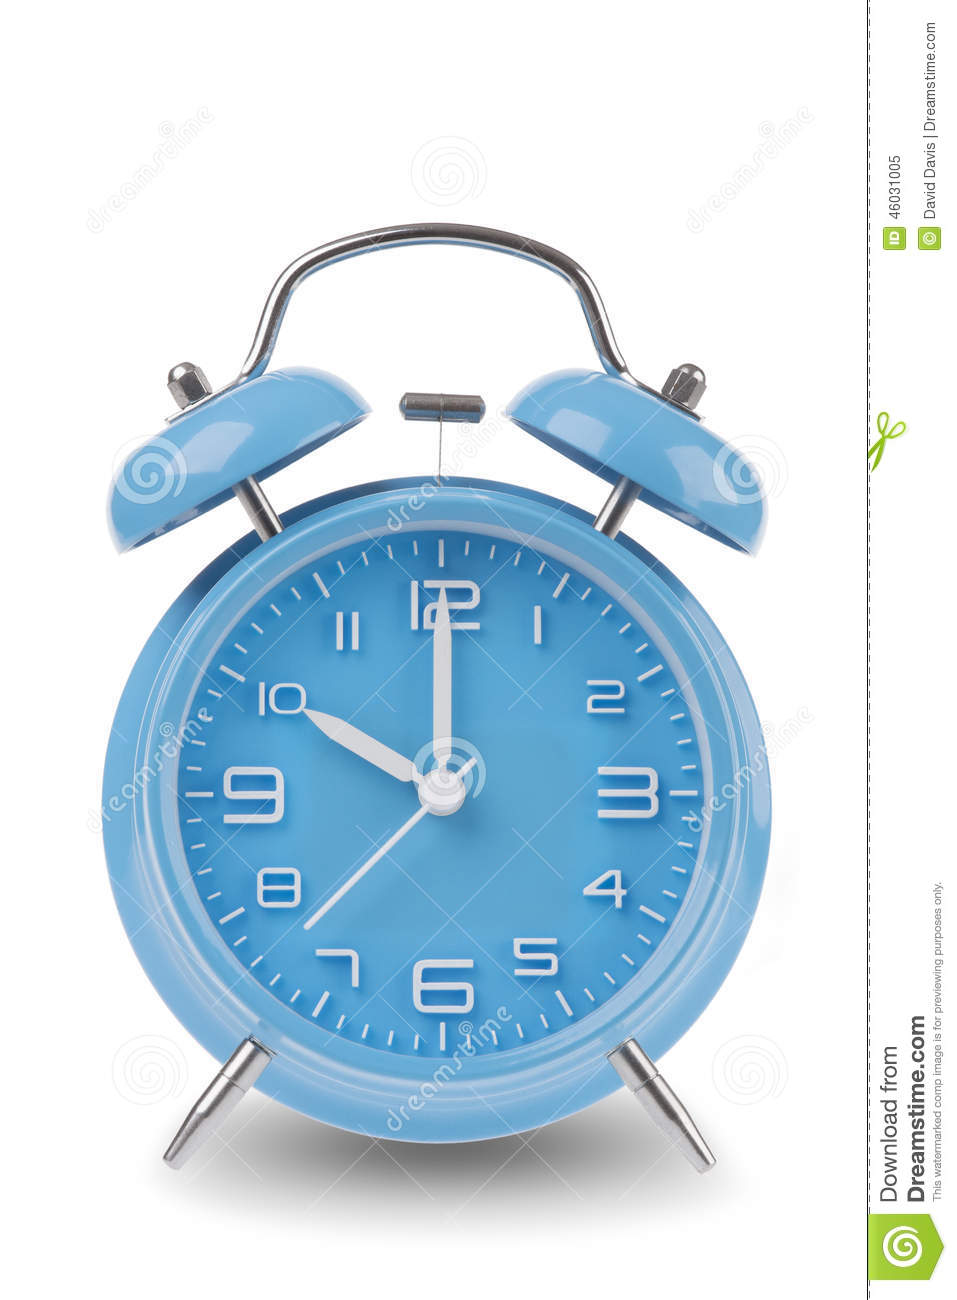 blue alarm clock with the hands at 10 am or pm isolated on a white background stock image. Black Bedroom Furniture Sets. Home Design Ideas